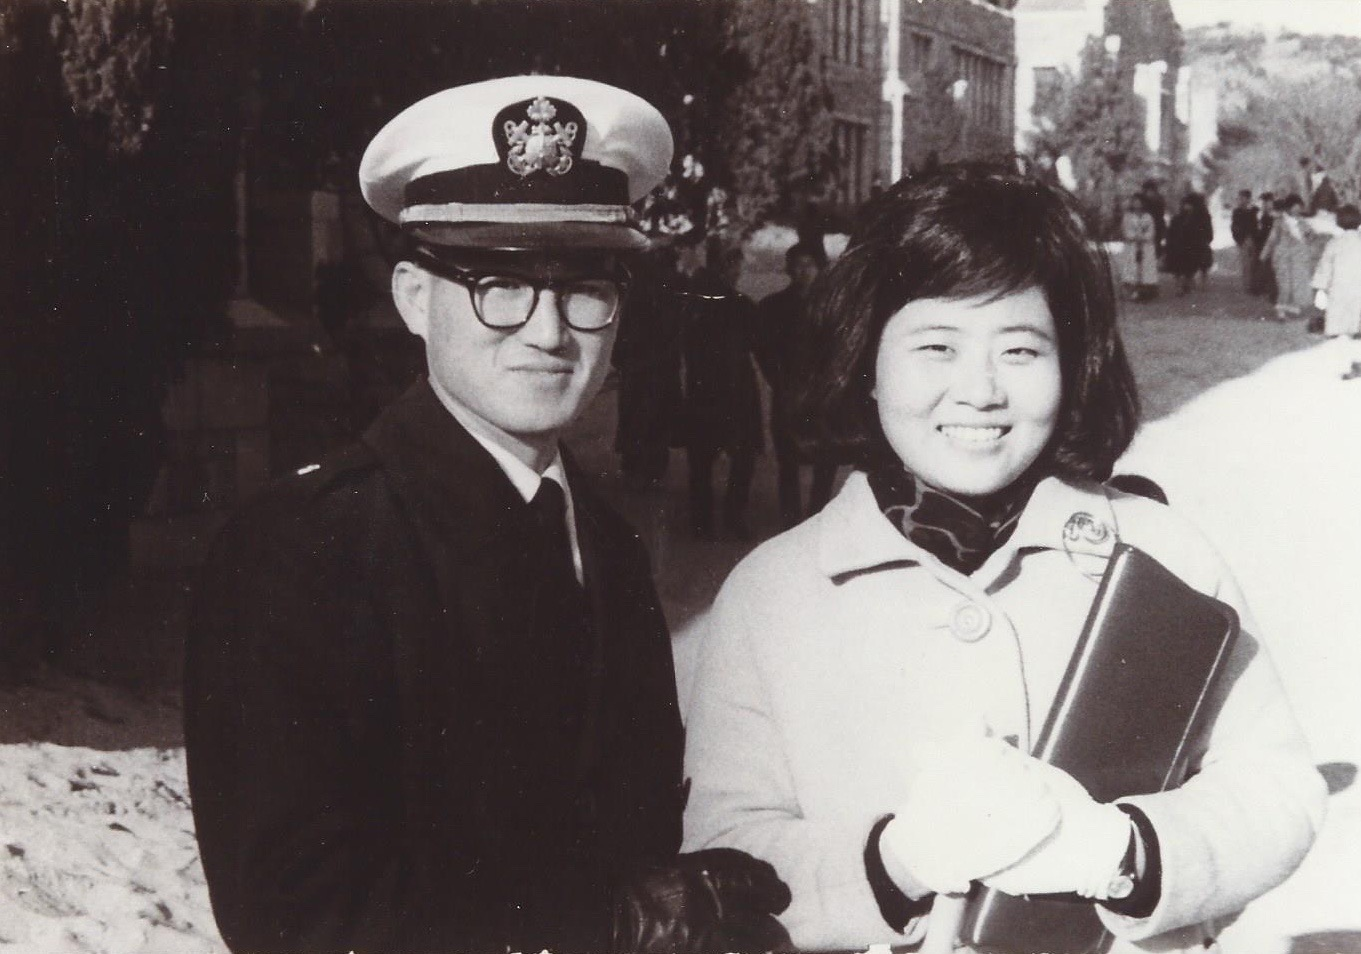 At his wife's college graduation, in his Navy uniform